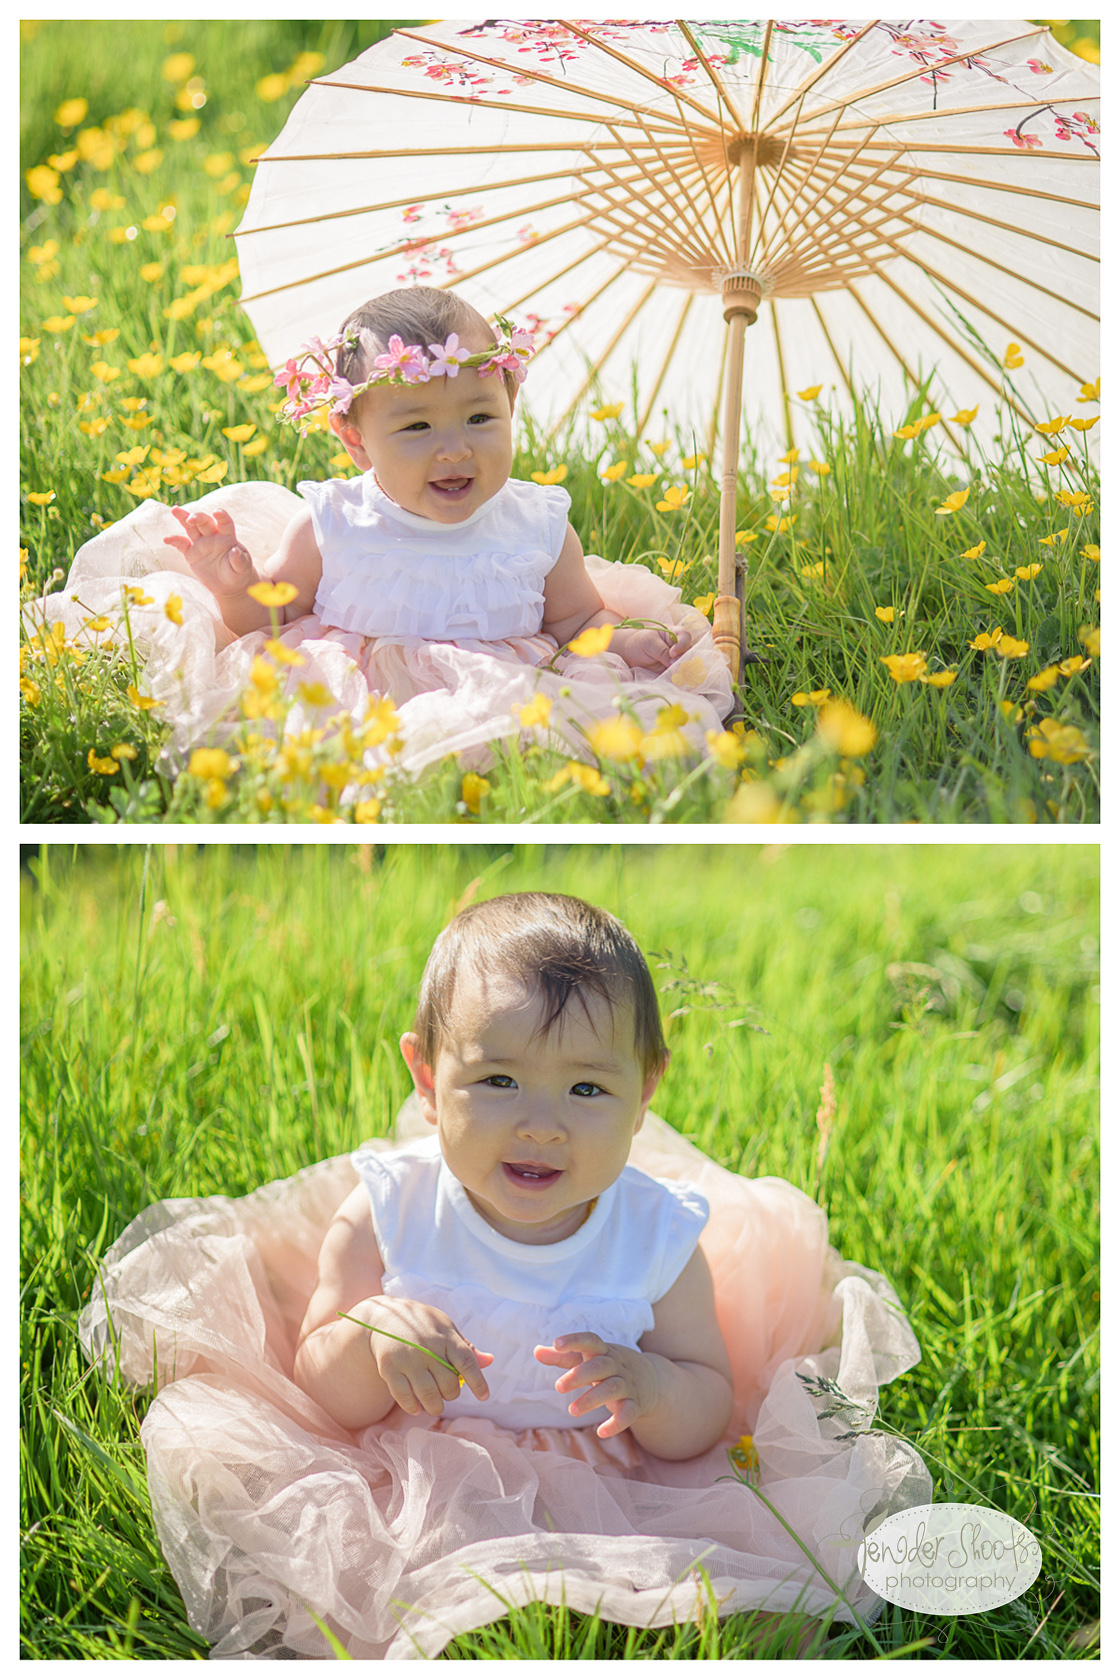 Tender Shoots Baby Photography